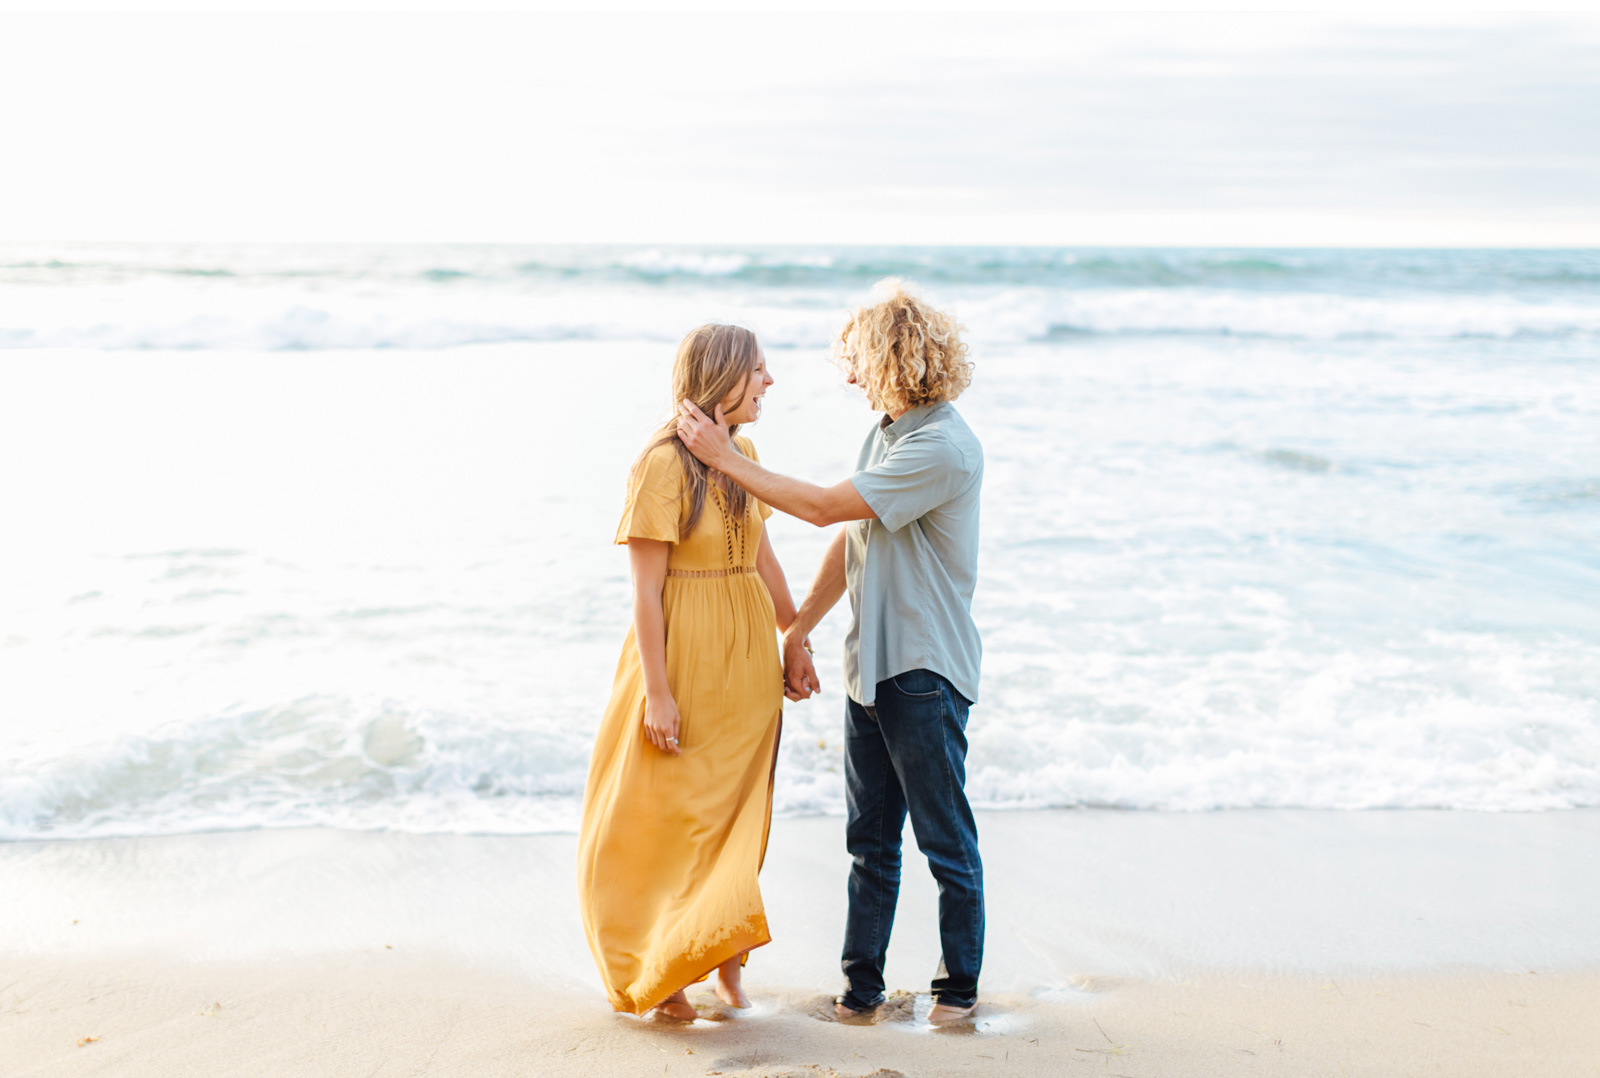 Style-Me-Pretty-California-Surf-Engagement-Natalie-Schutt-Photography_16.jpg